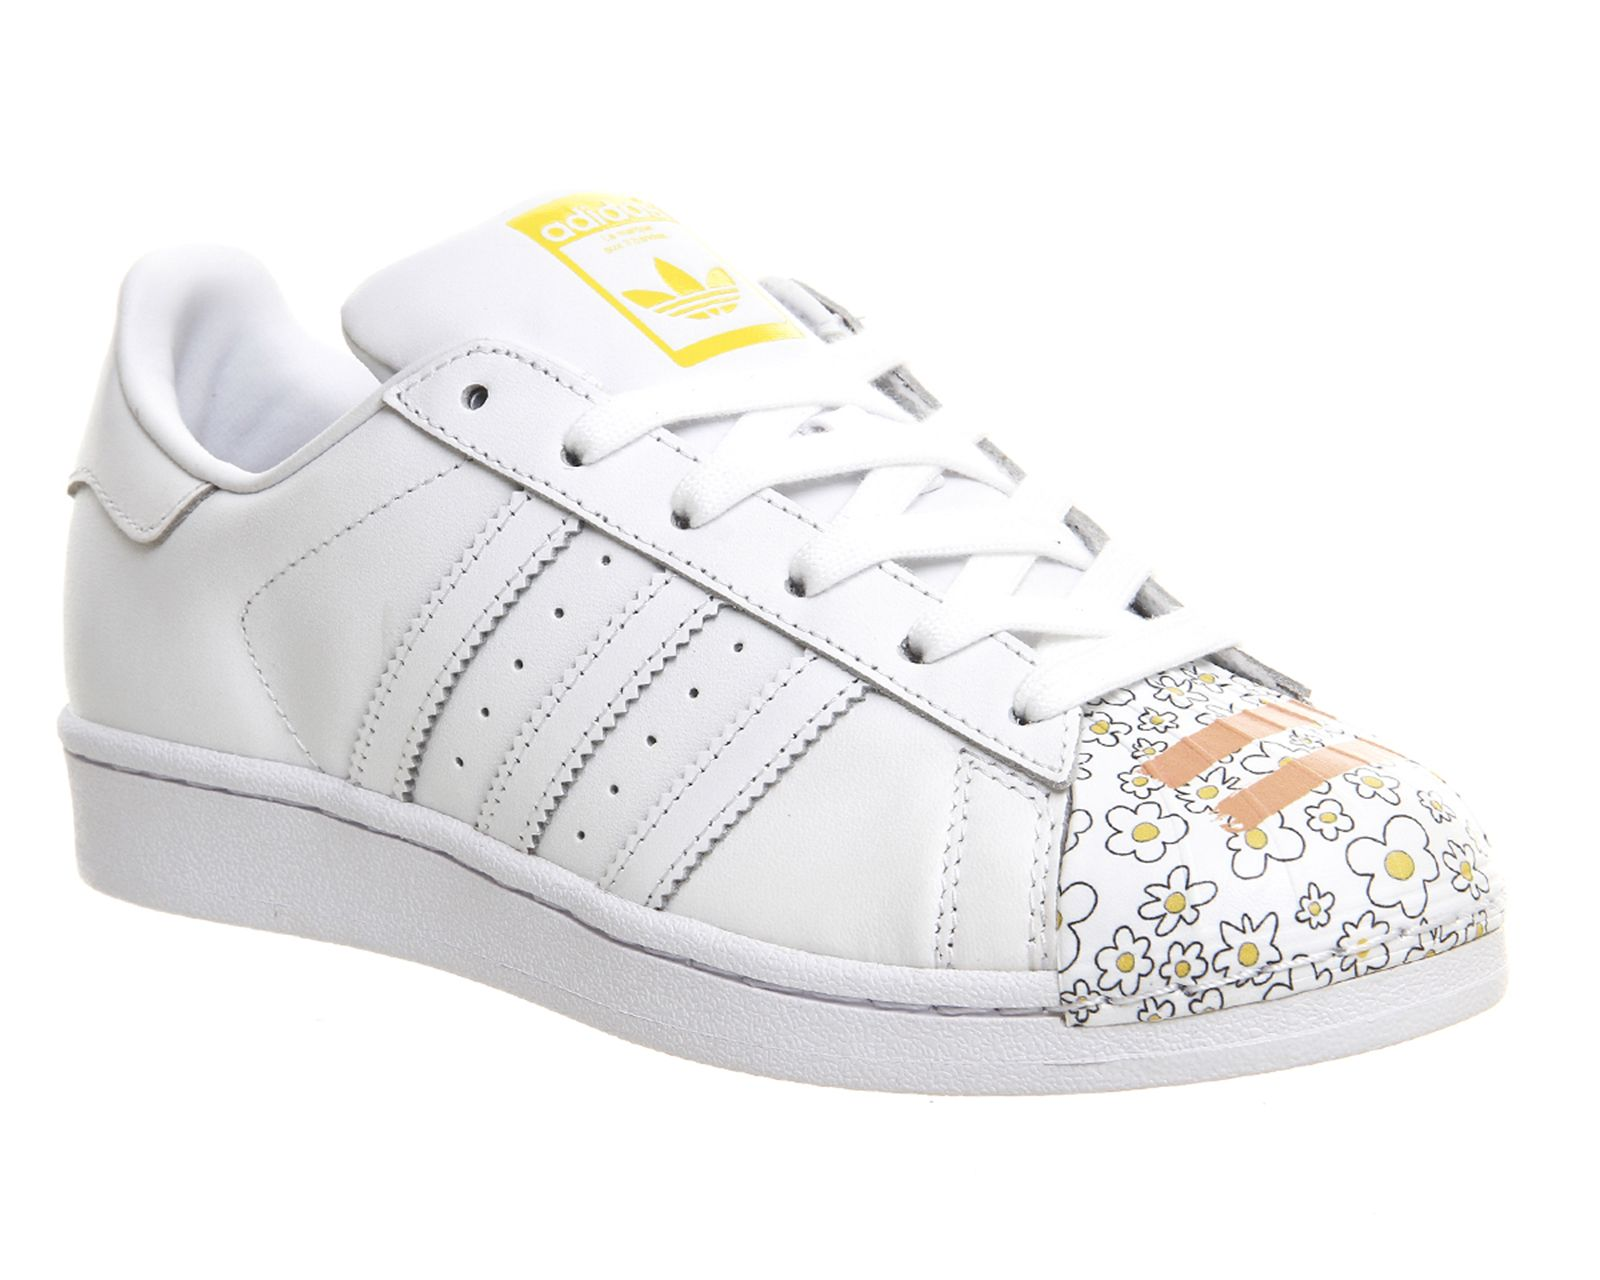 promo code 25030 455ca Adidas Superstar 1 Pharrell White Red Orange Shell Toe - Unisex Sports